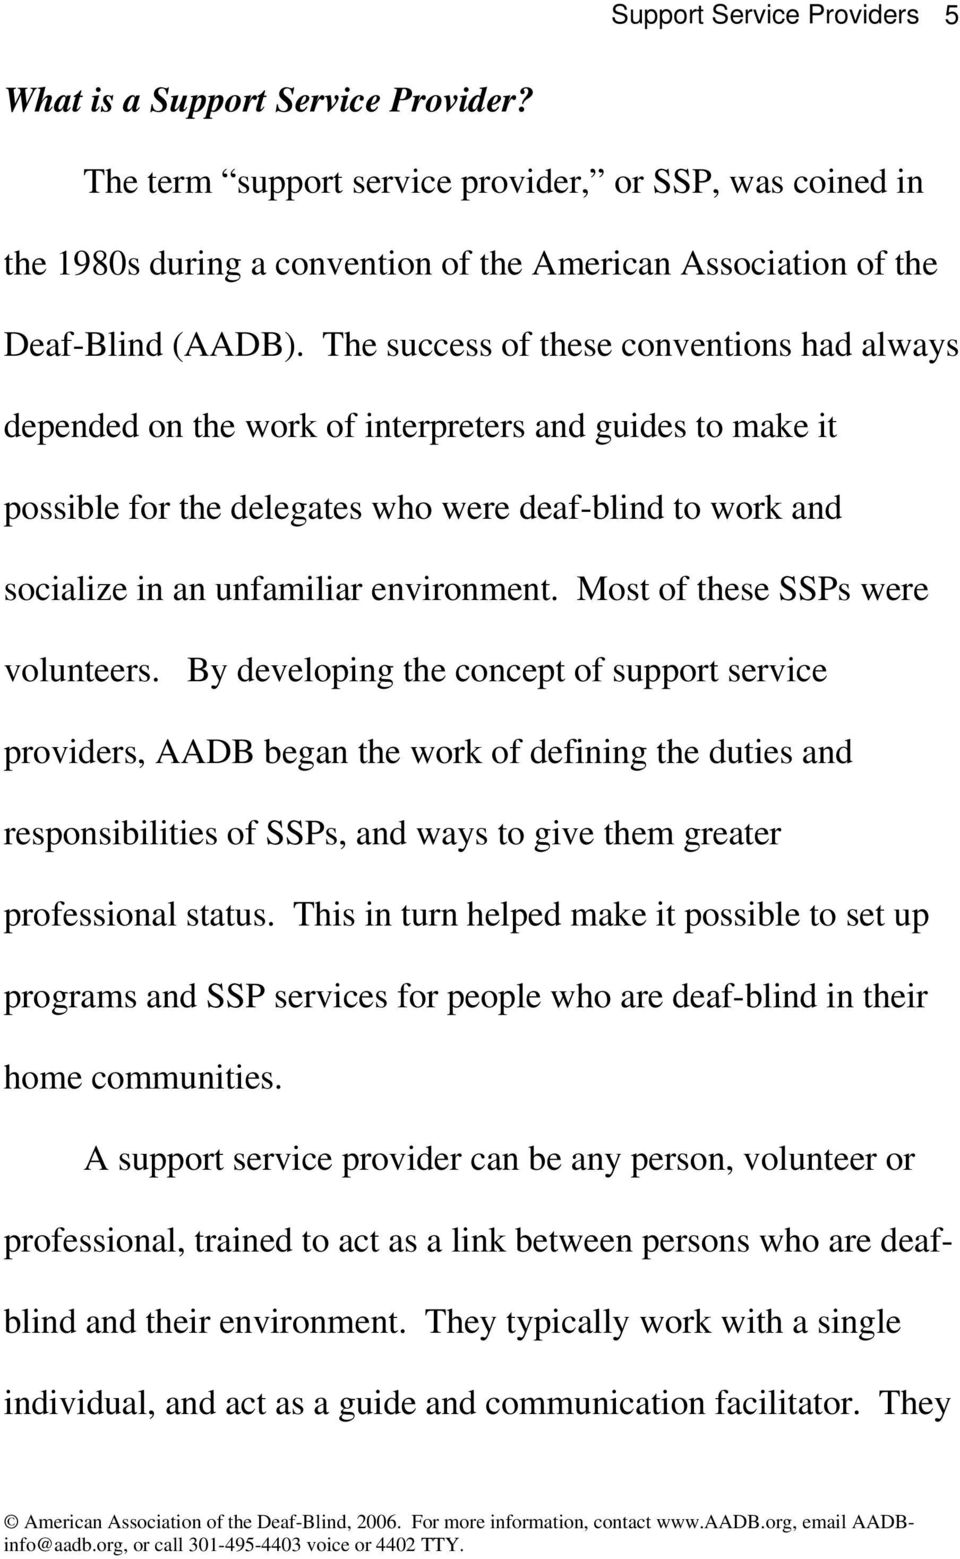 The success of these conventions had always depended on the work of interpreters and guides to make it possible for the delegates who were deaf-blind to work and socialize in an unfamiliar